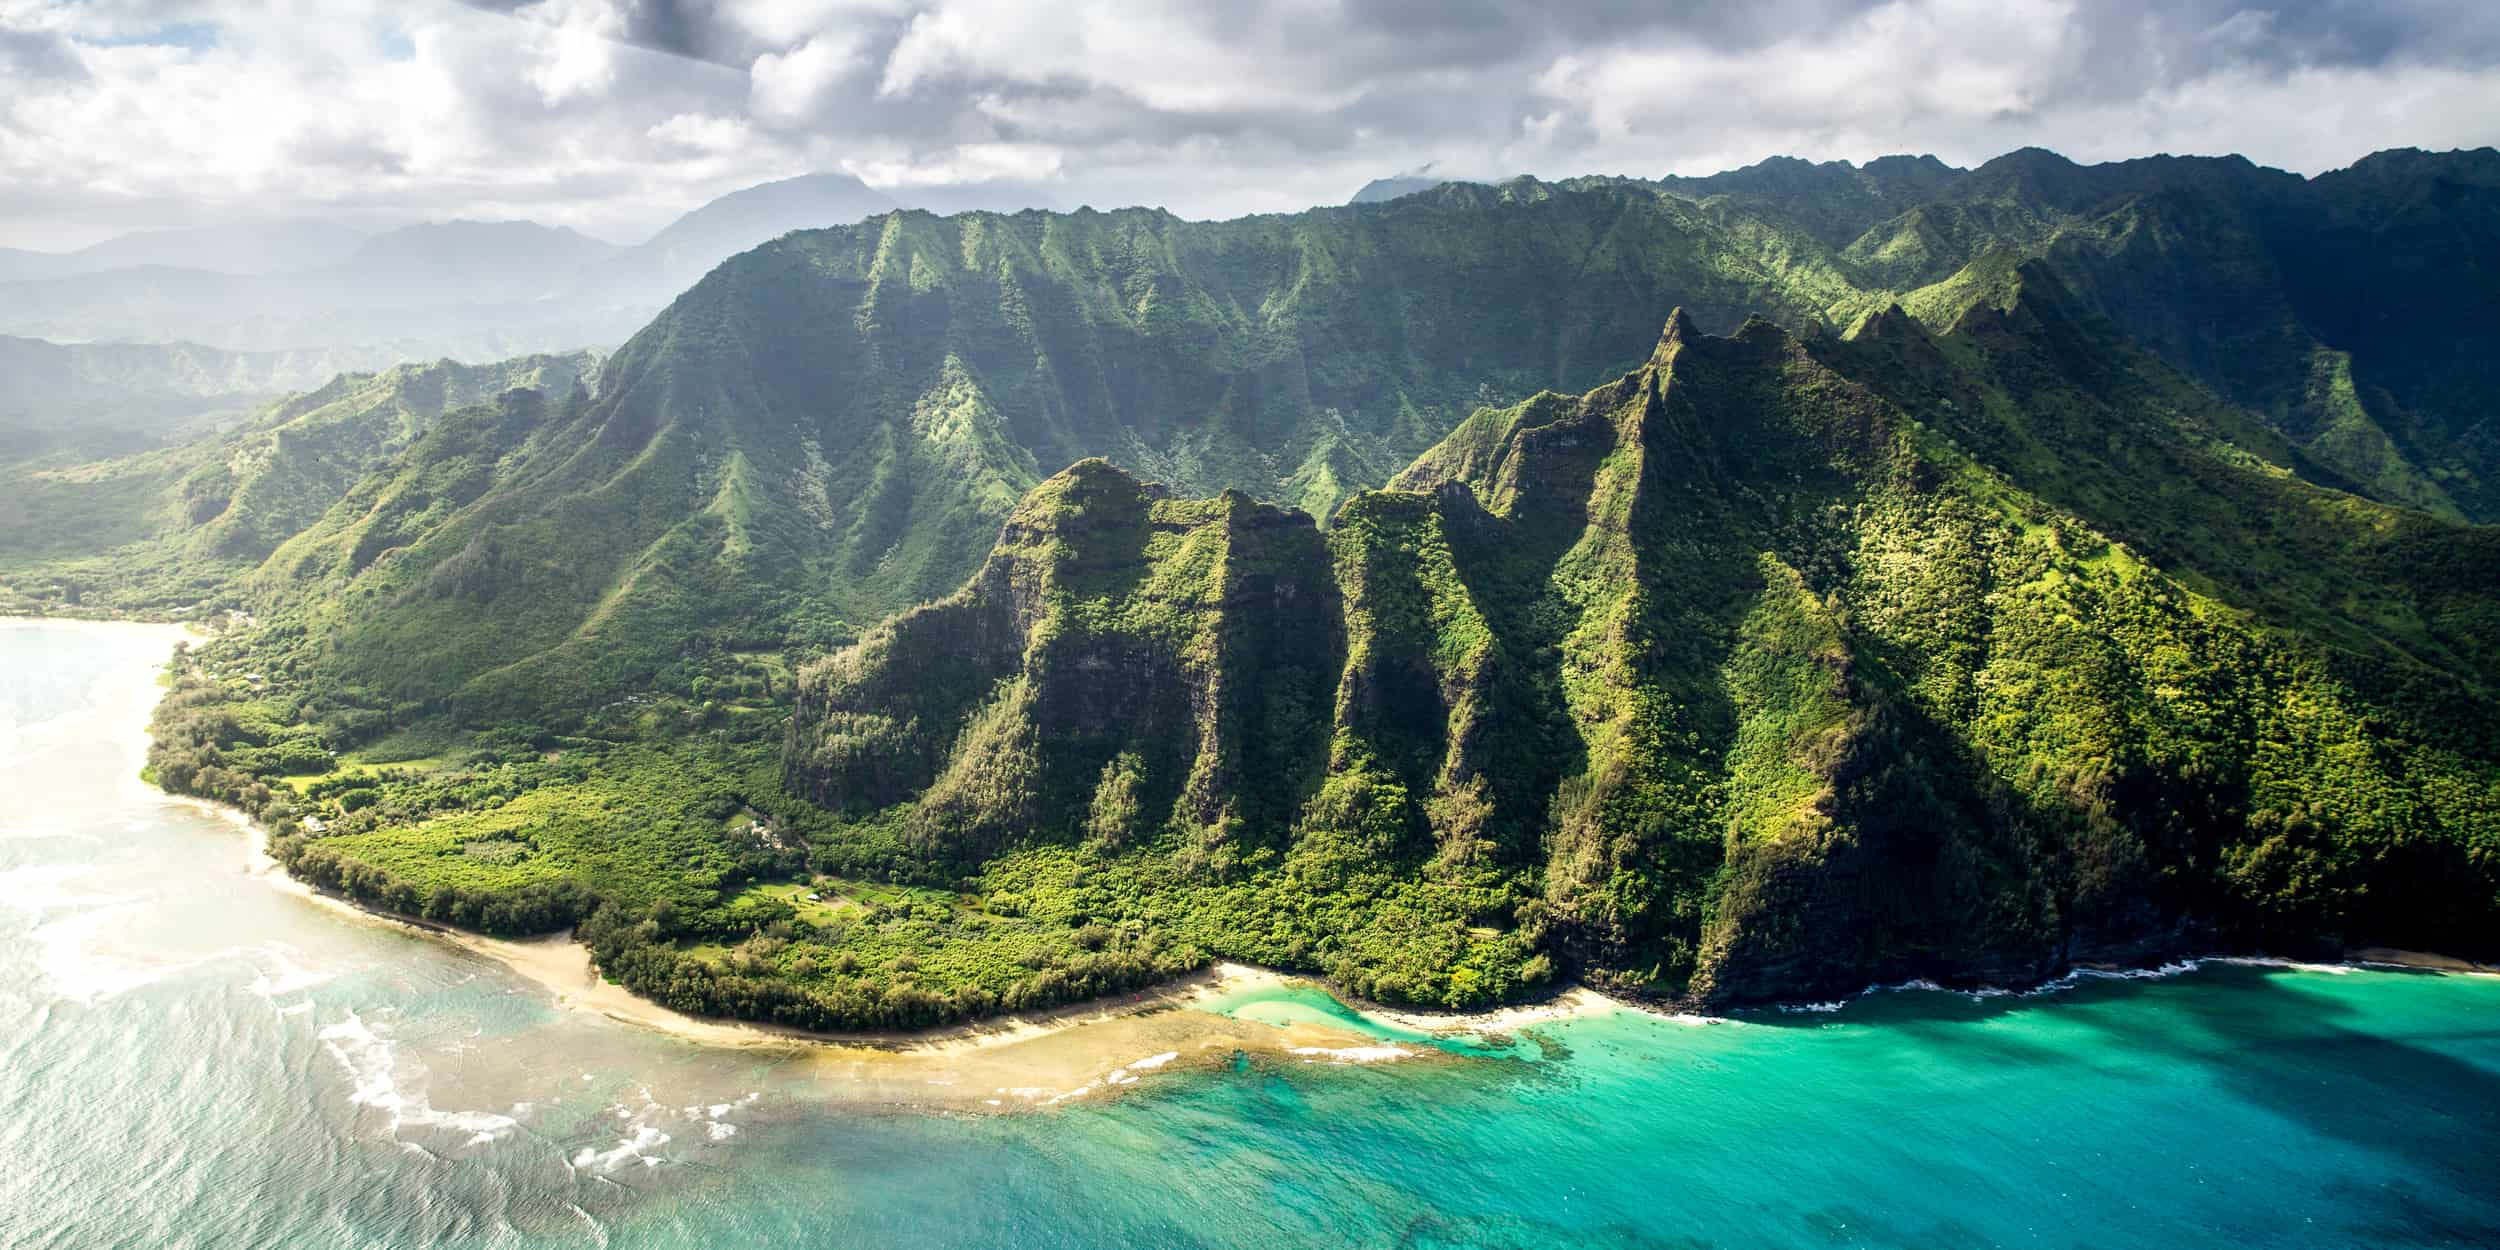 6-Day Itinerary in Kauai, HI – Journey to the Garden Island